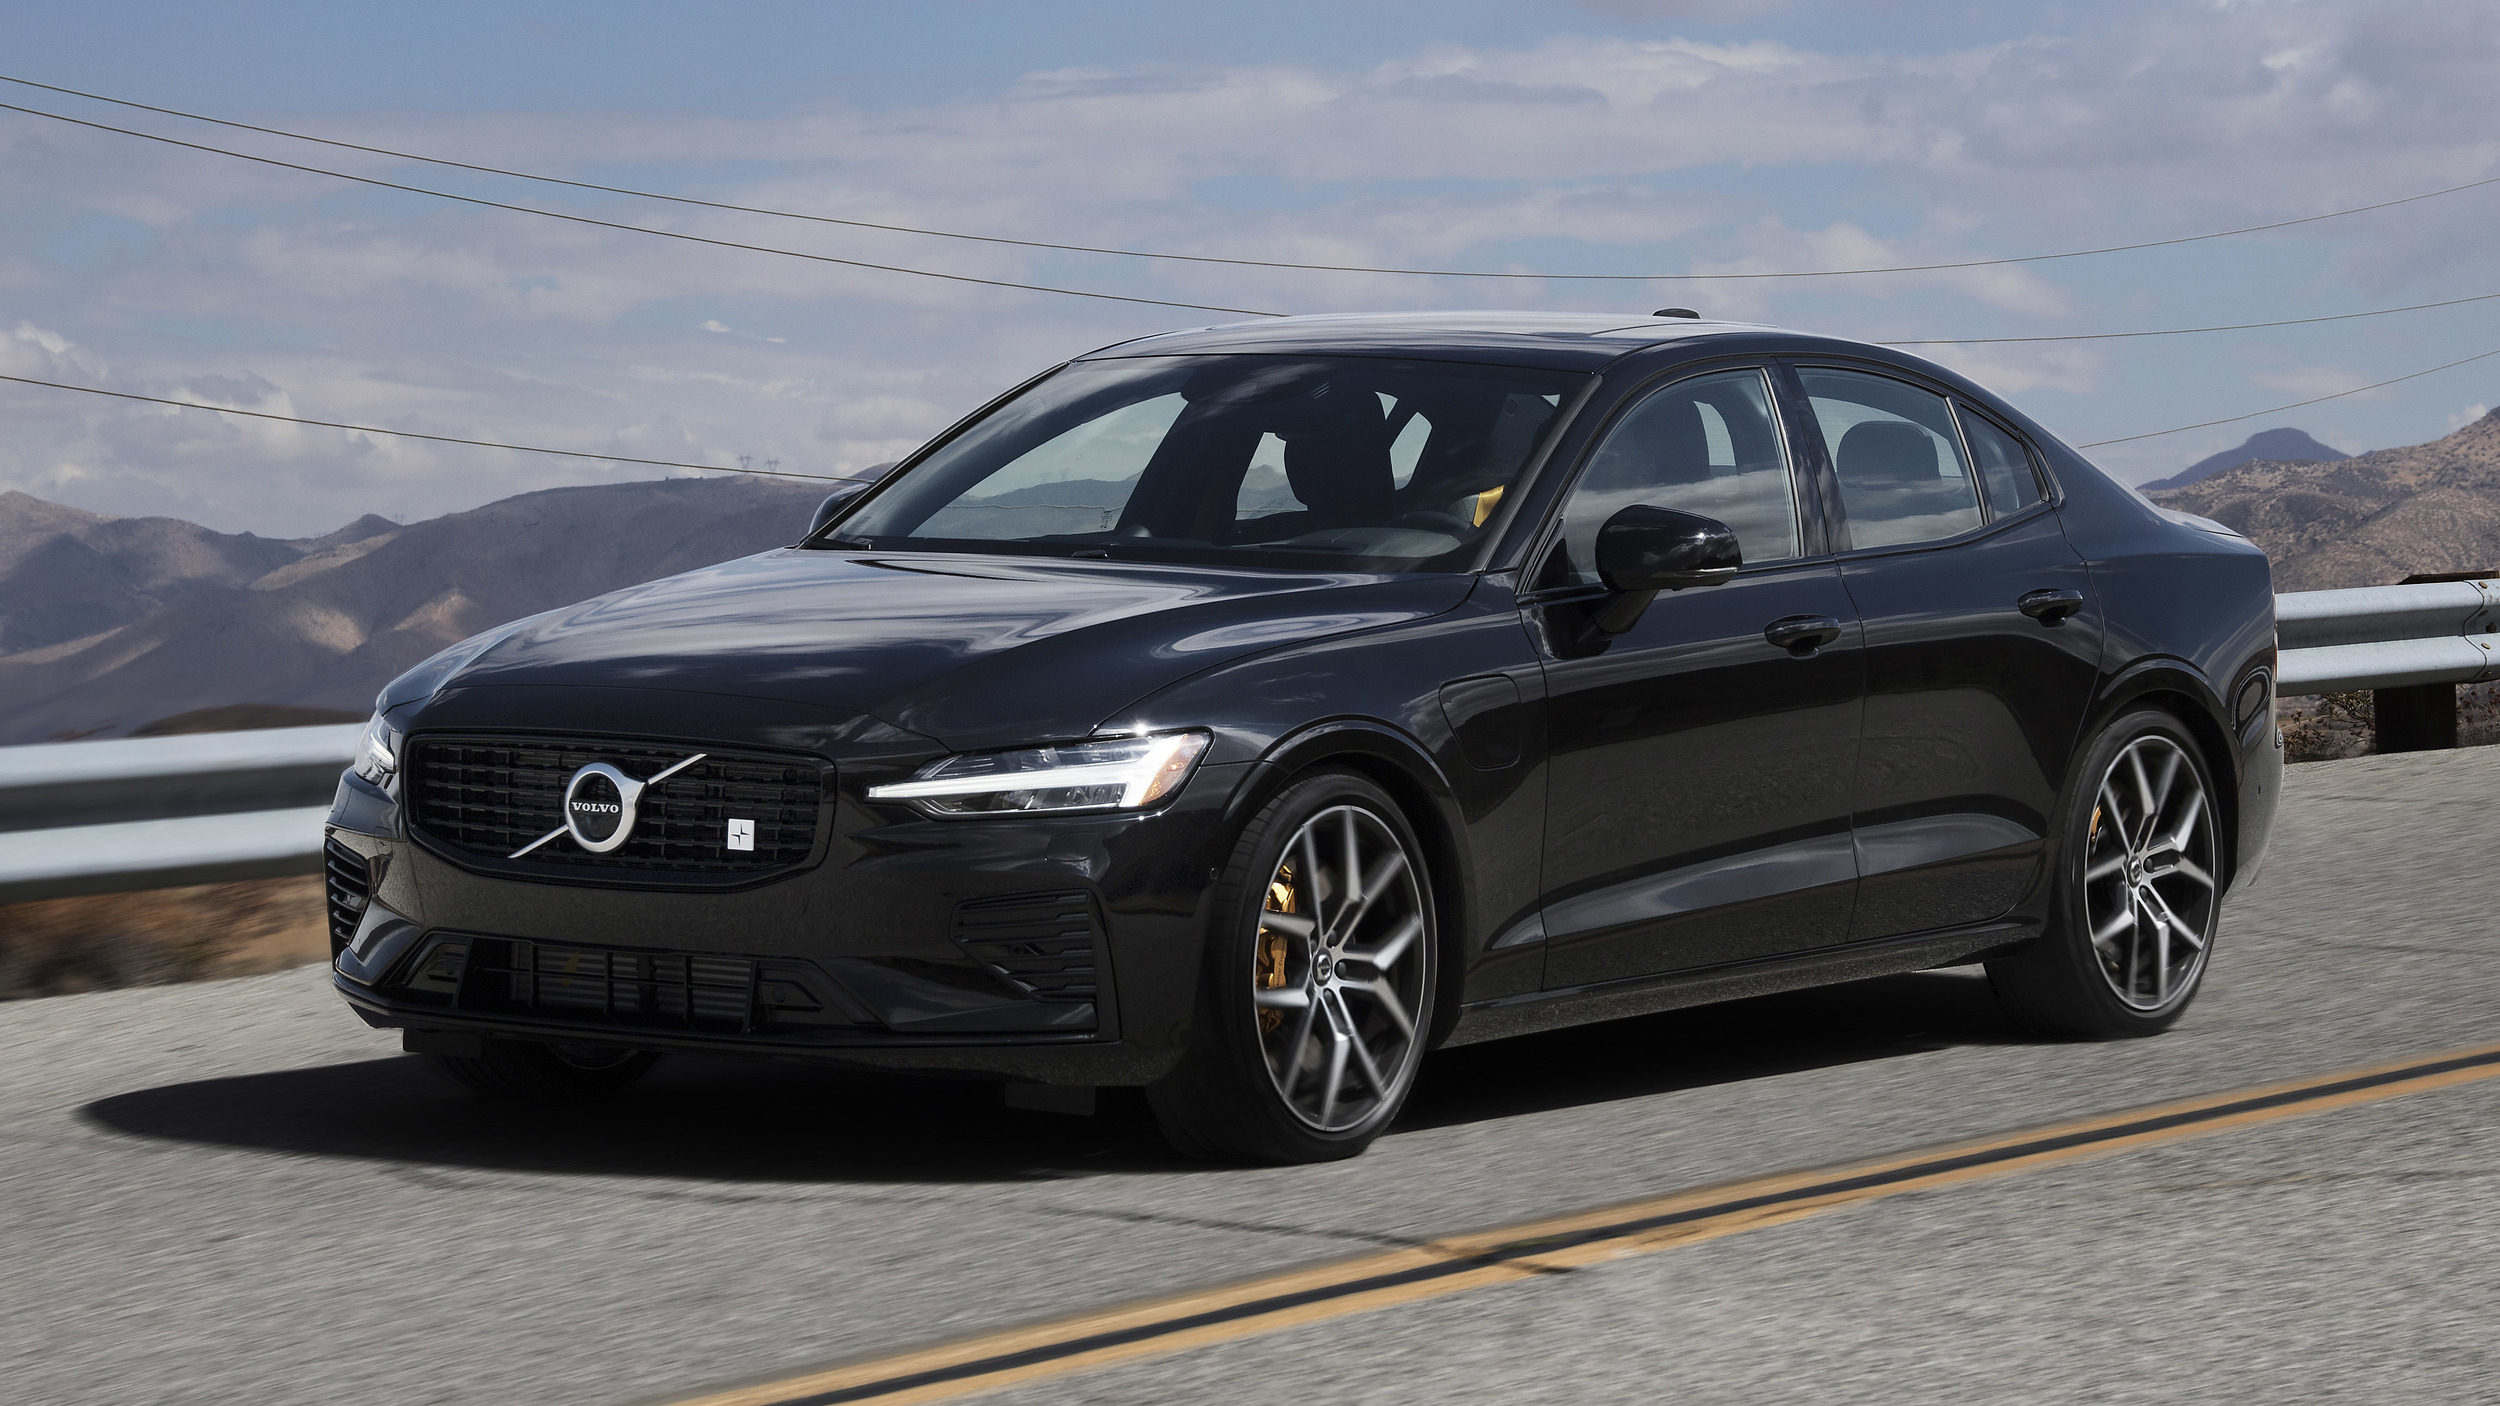 2019 Volvo S60 Polestar Engineered first drive review | Autoblog